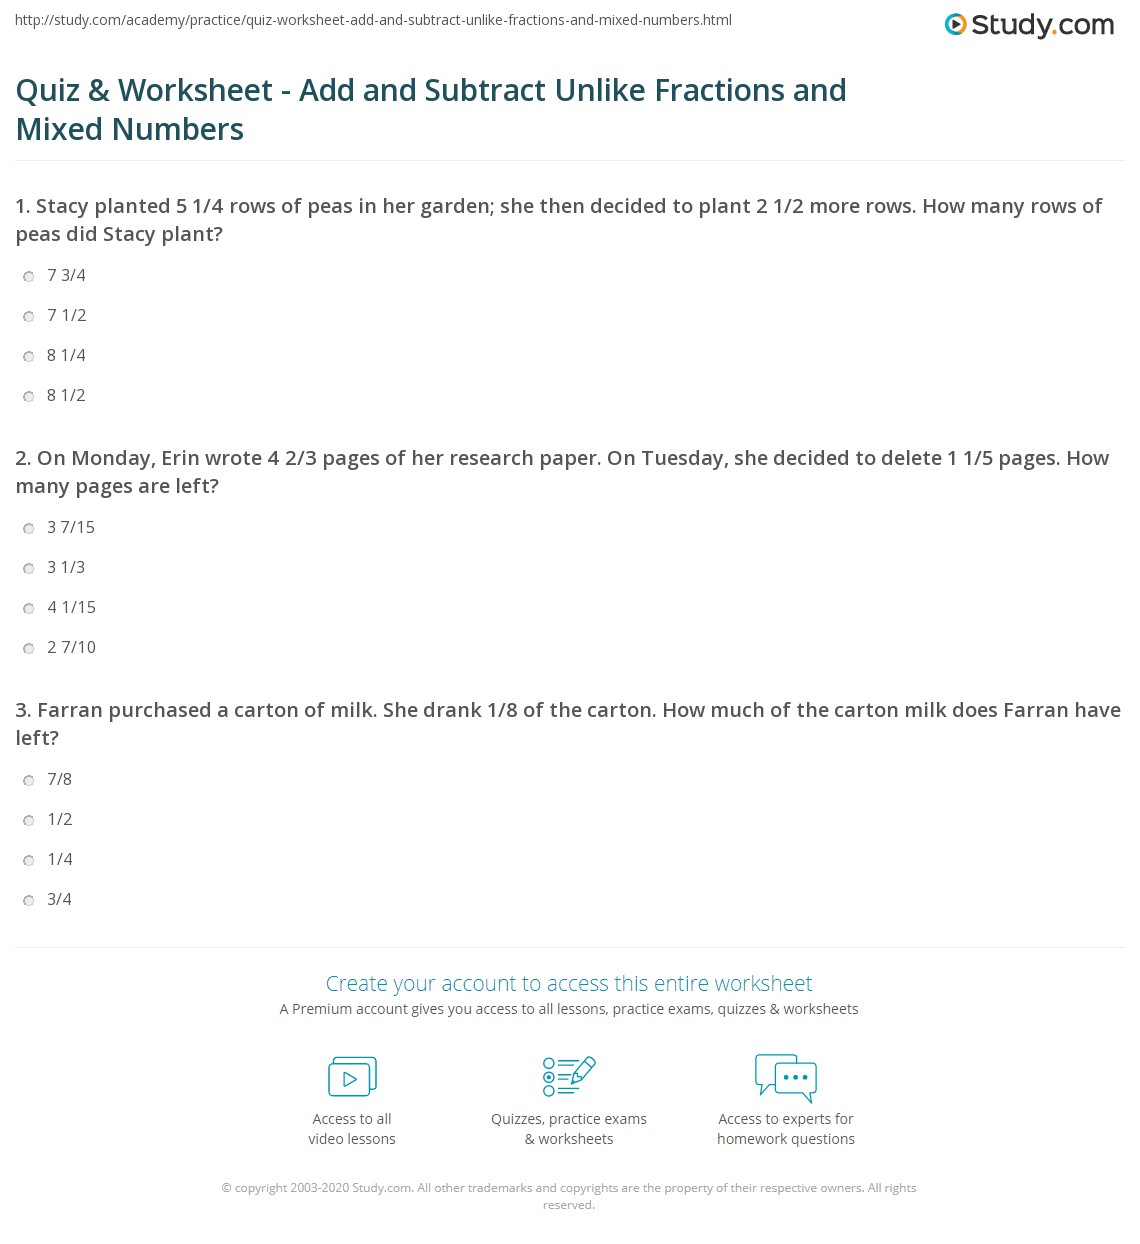 Quiz Worksheet Add and Subtract Unlike Fractions and Mixed – Adding and Subtracting Mixed Numbers with Like Denominators Worksheet